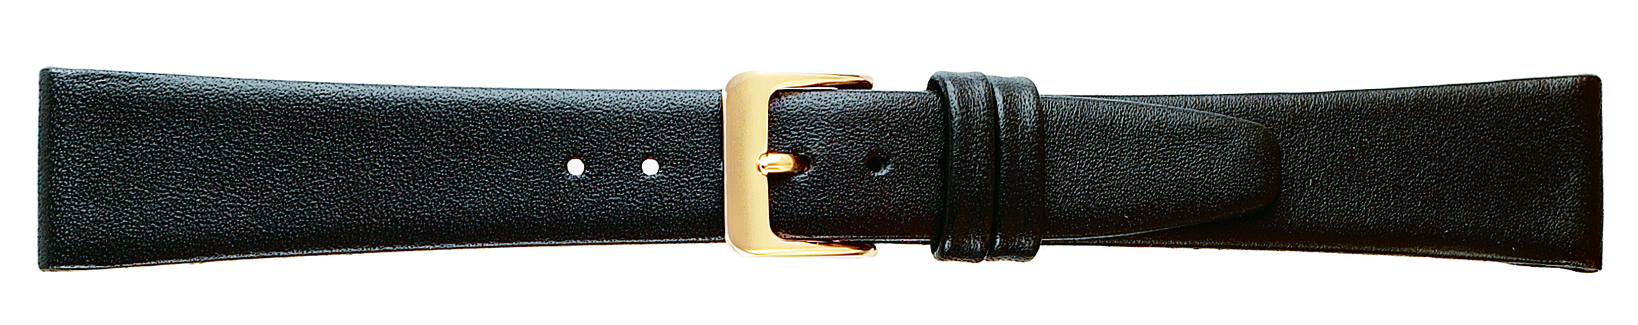 20MM Leather Band Black Smooth Calf Extra Long-0